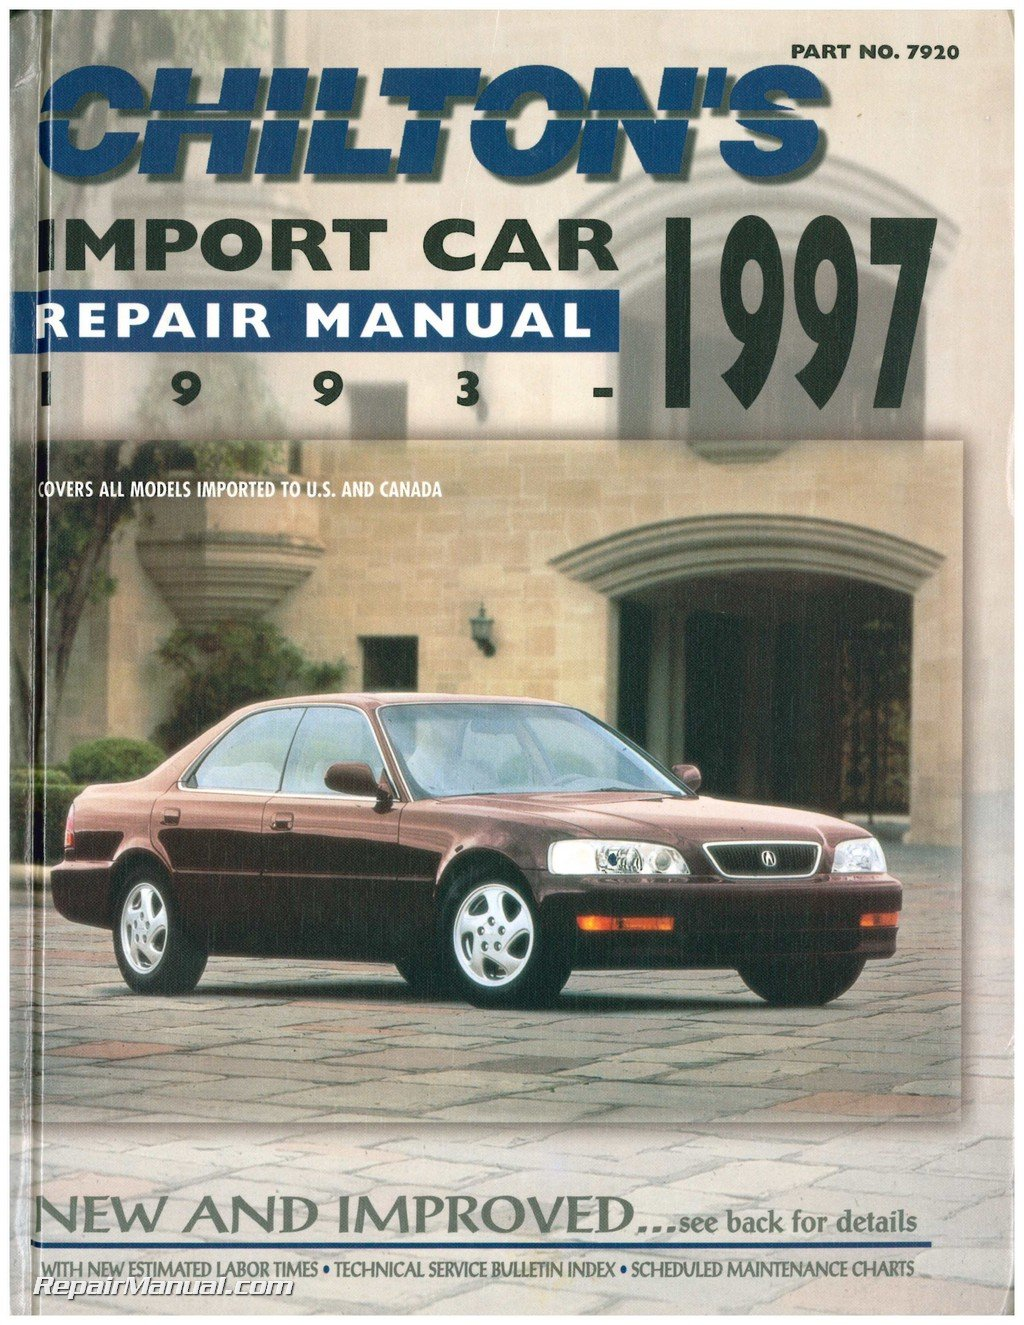 CH7920 Chilton Import Car Repair Manual 1993-1997: Manufacturer:  Amazon.com: Books